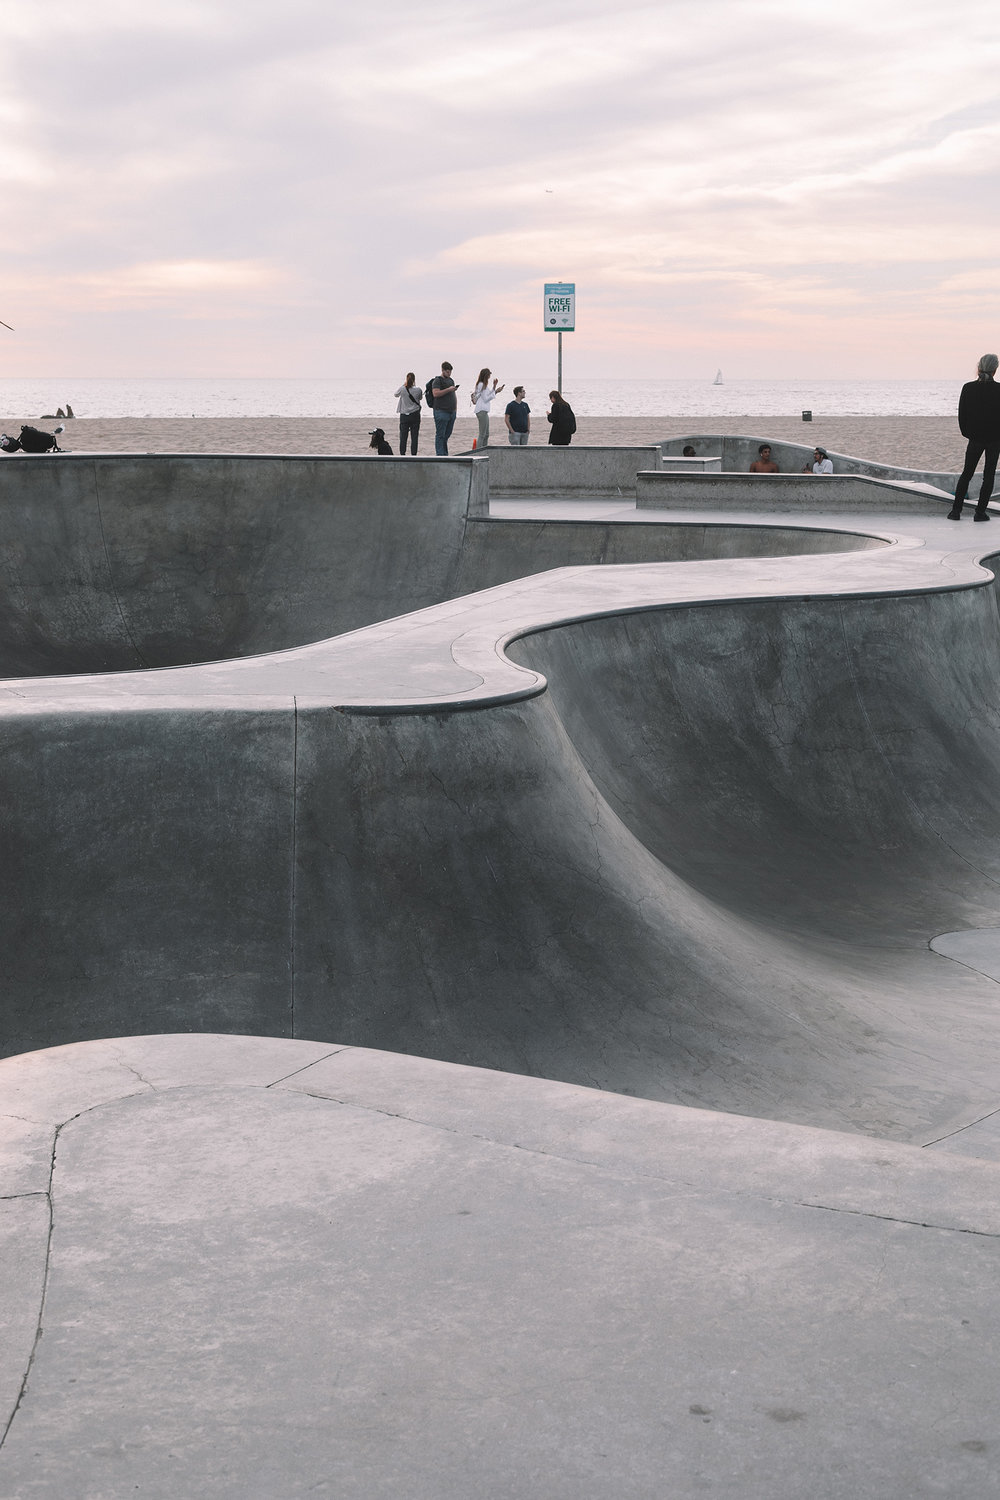 Venice Beach Skate Park / Skateboard Photography / Abstract Architecture / Kelly Fiance Creative